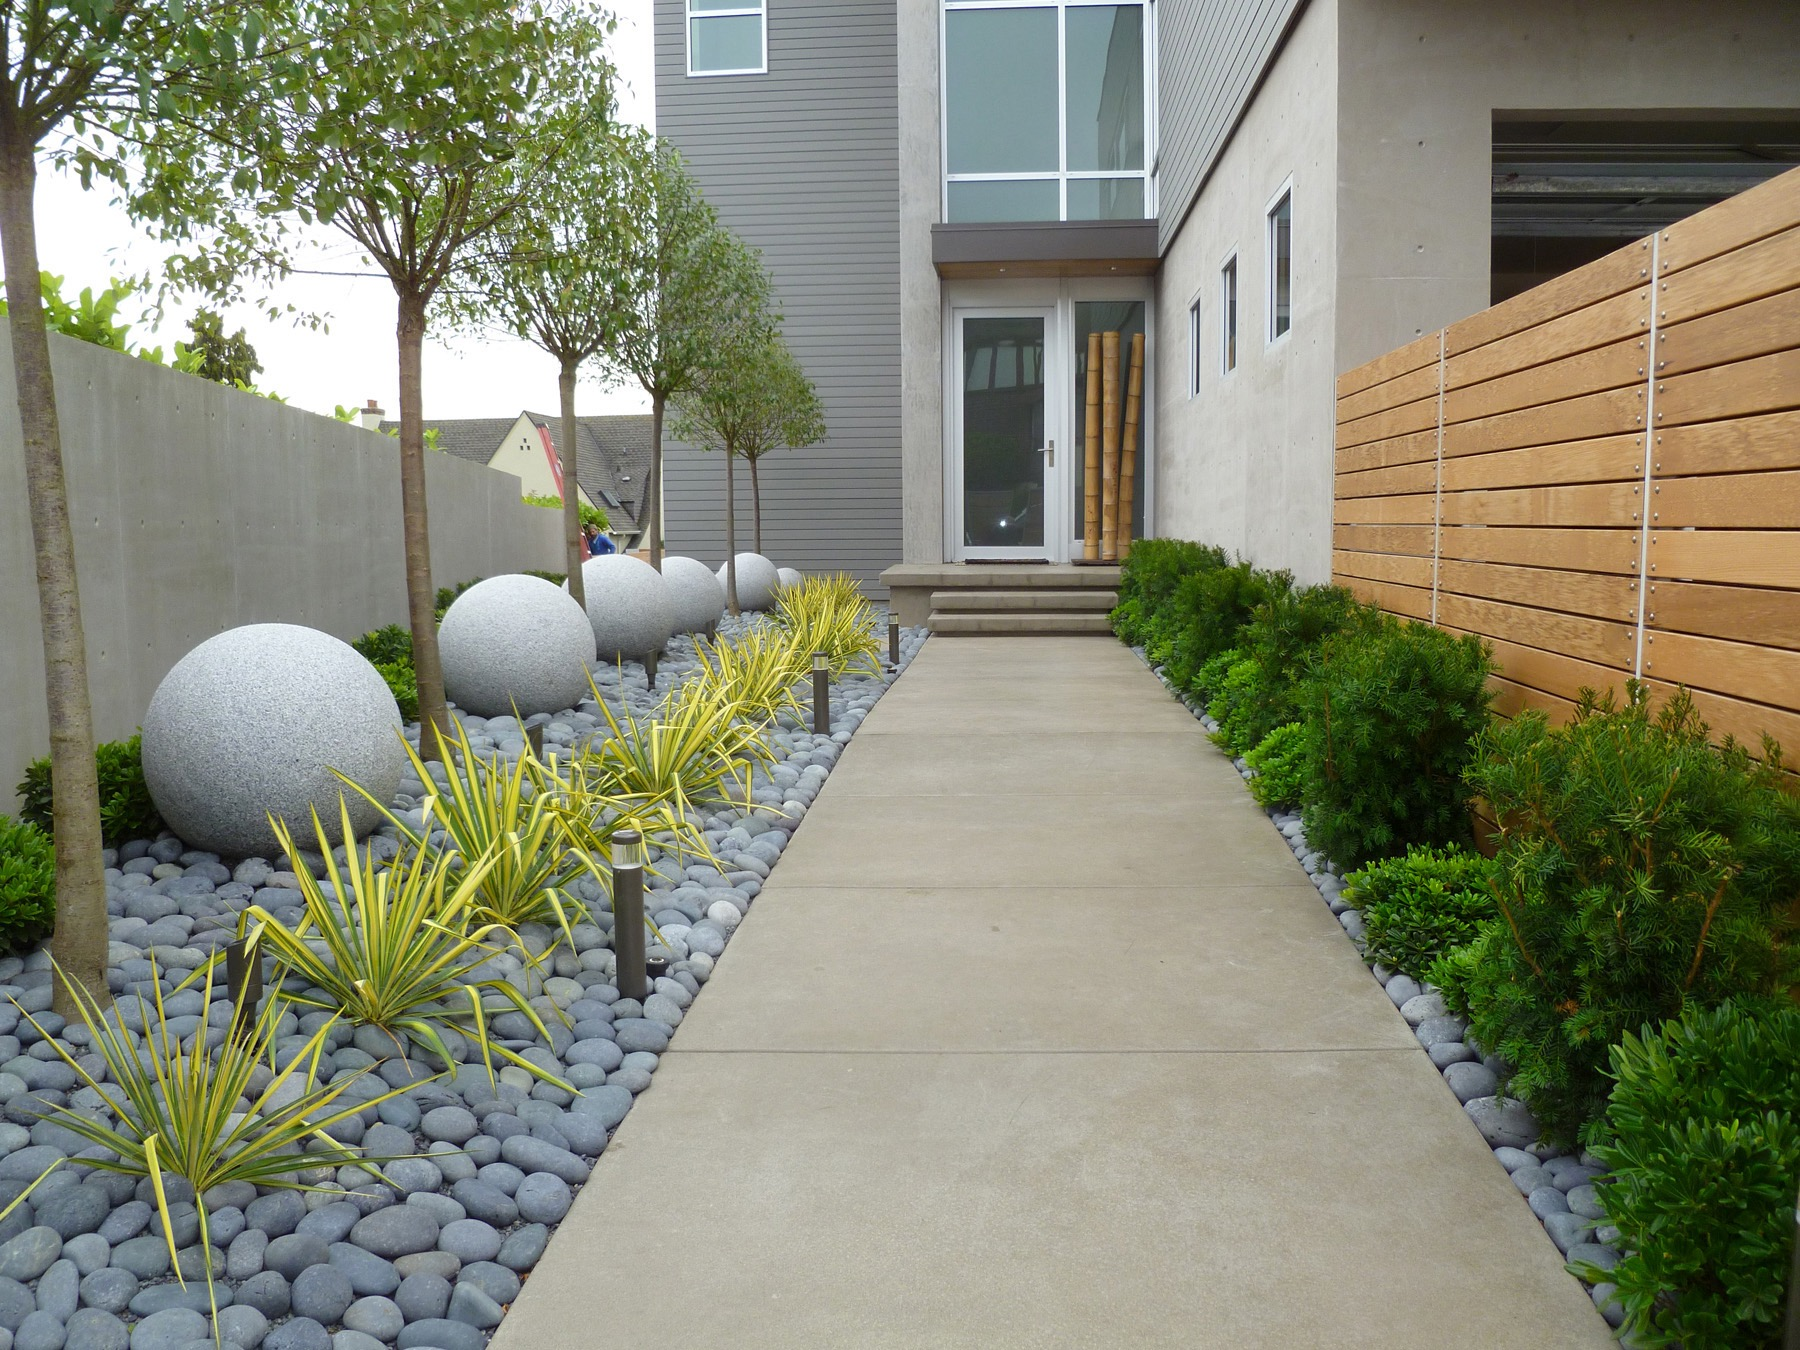 2017 Fabulous Contemporary Rock Garden (Image 2 of 35)